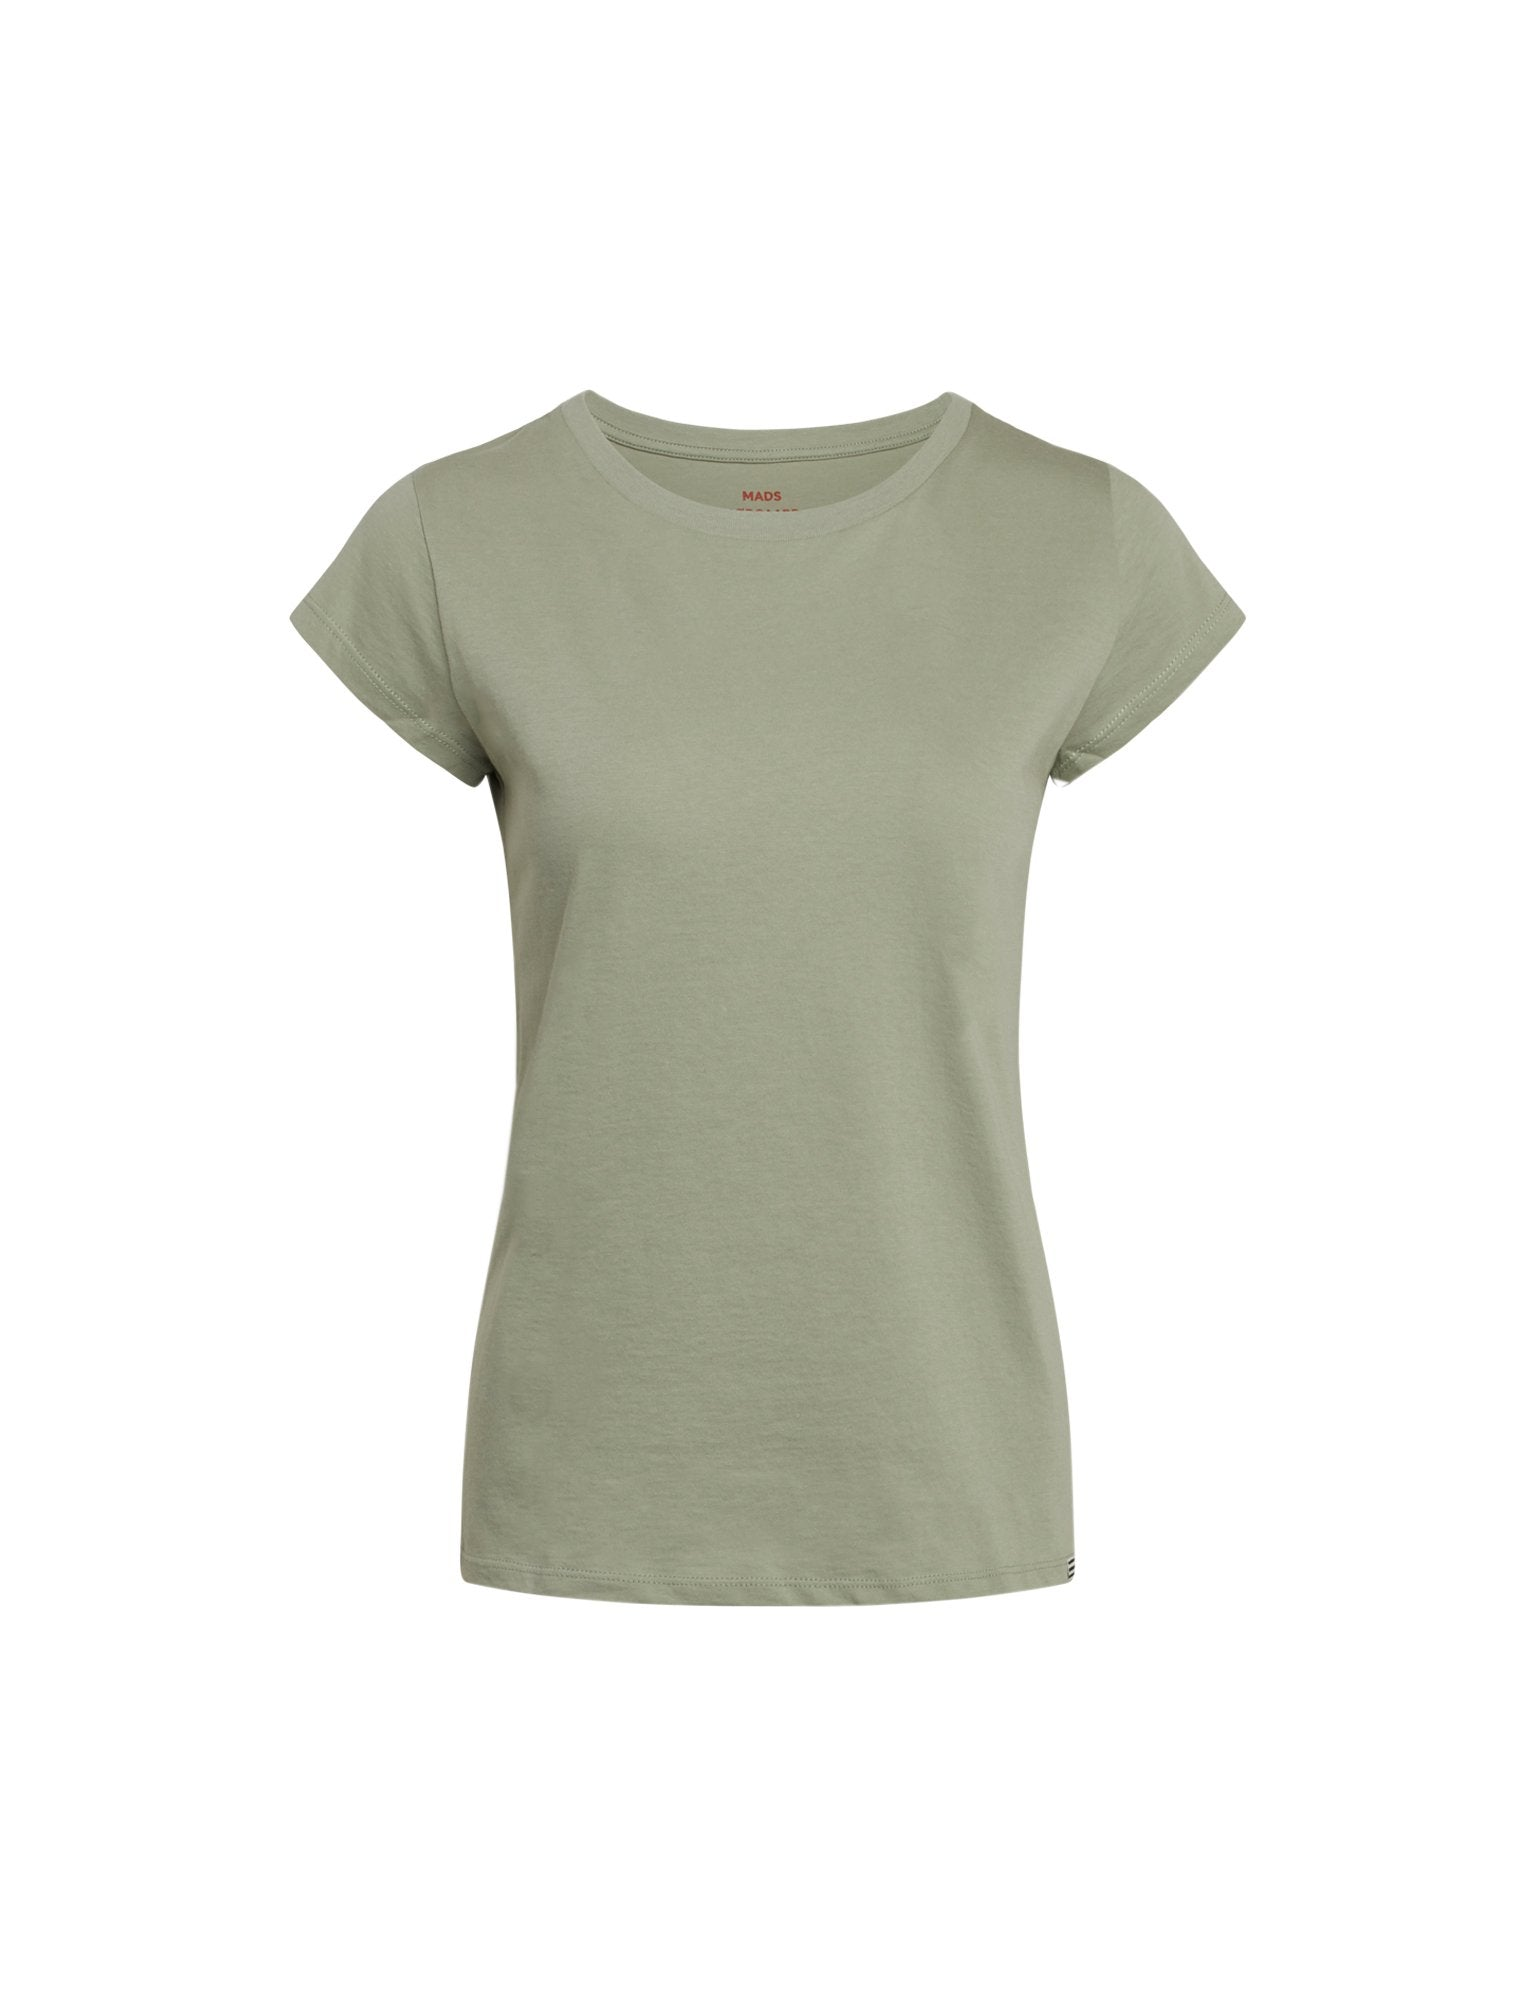 Organic Favorite Teasy Tee, Light Army